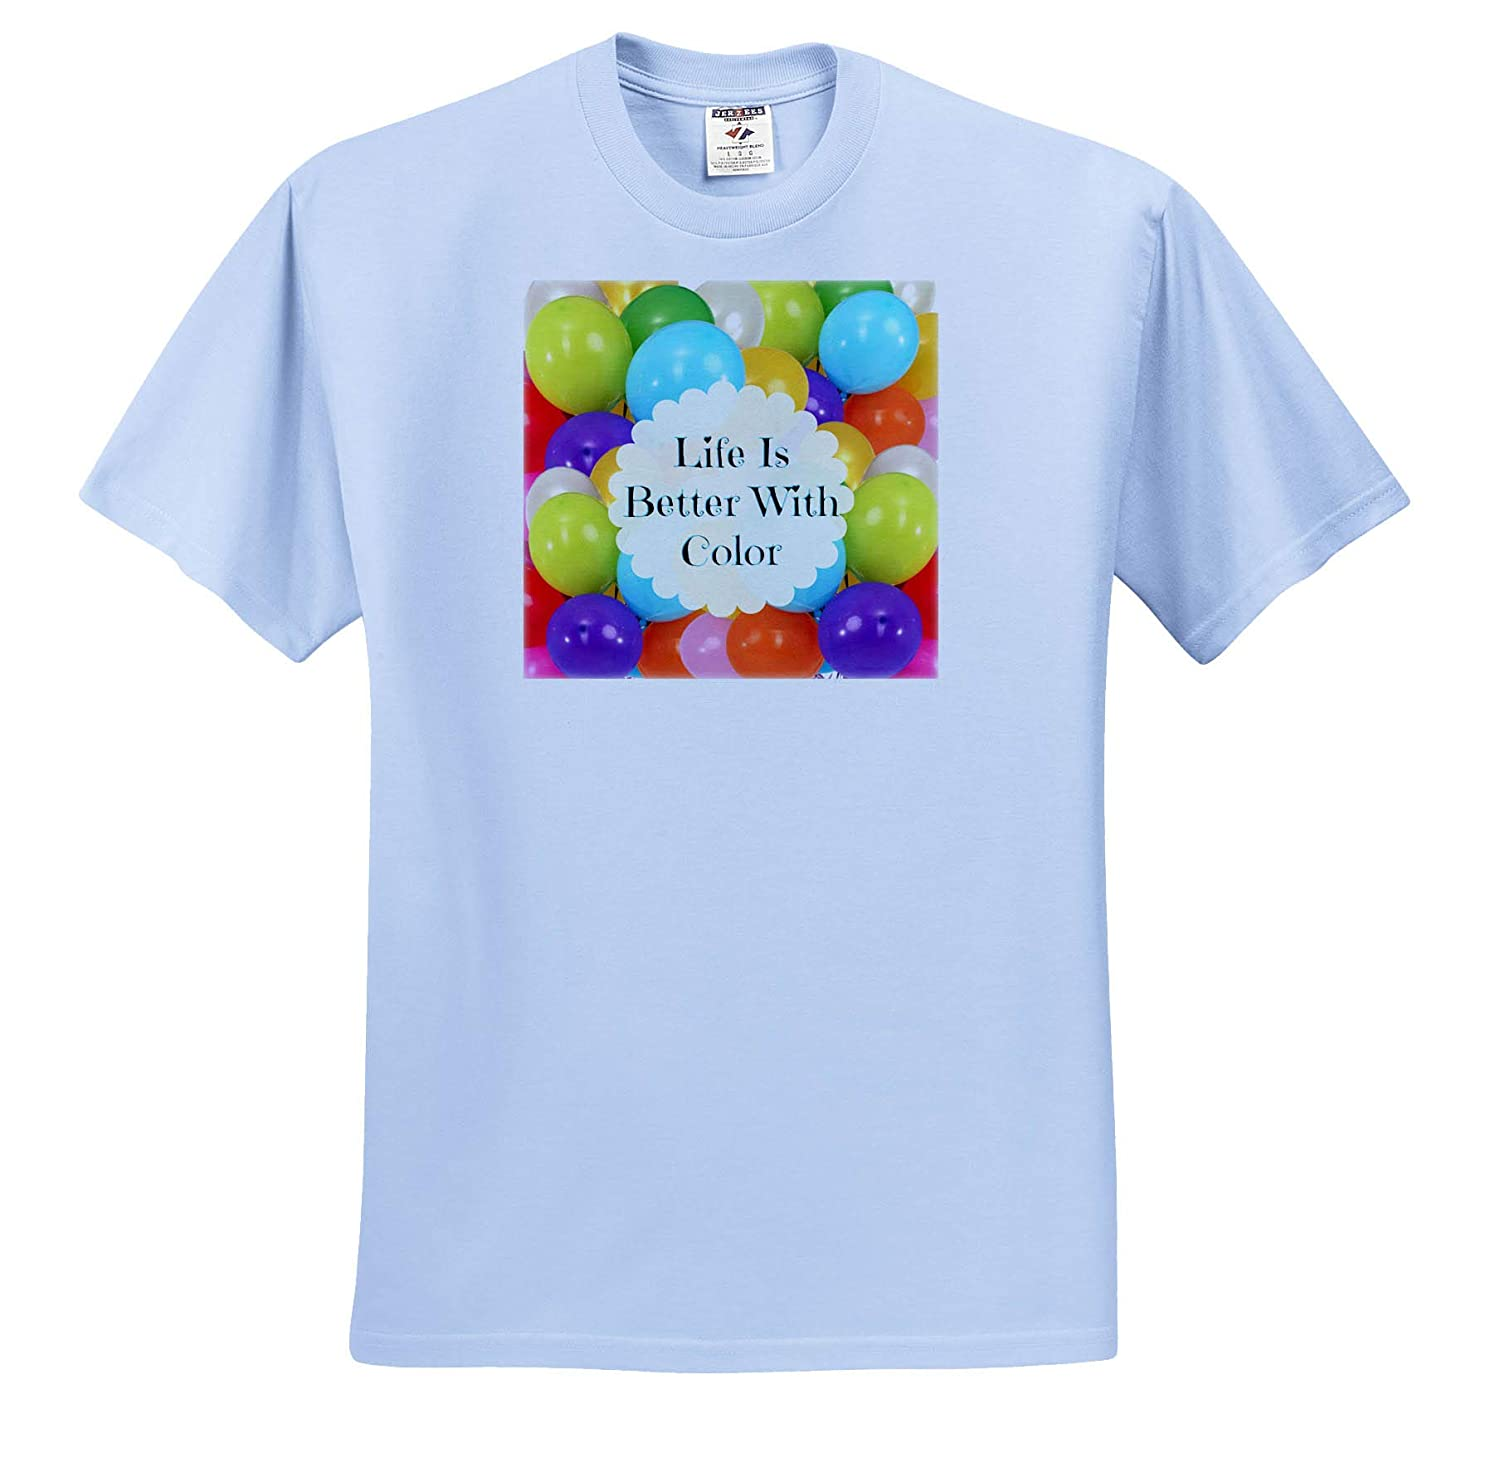 Image of Life is Better with Color Adult T-Shirt XL ts/_315327 3dRose Carrie Merchant Quote